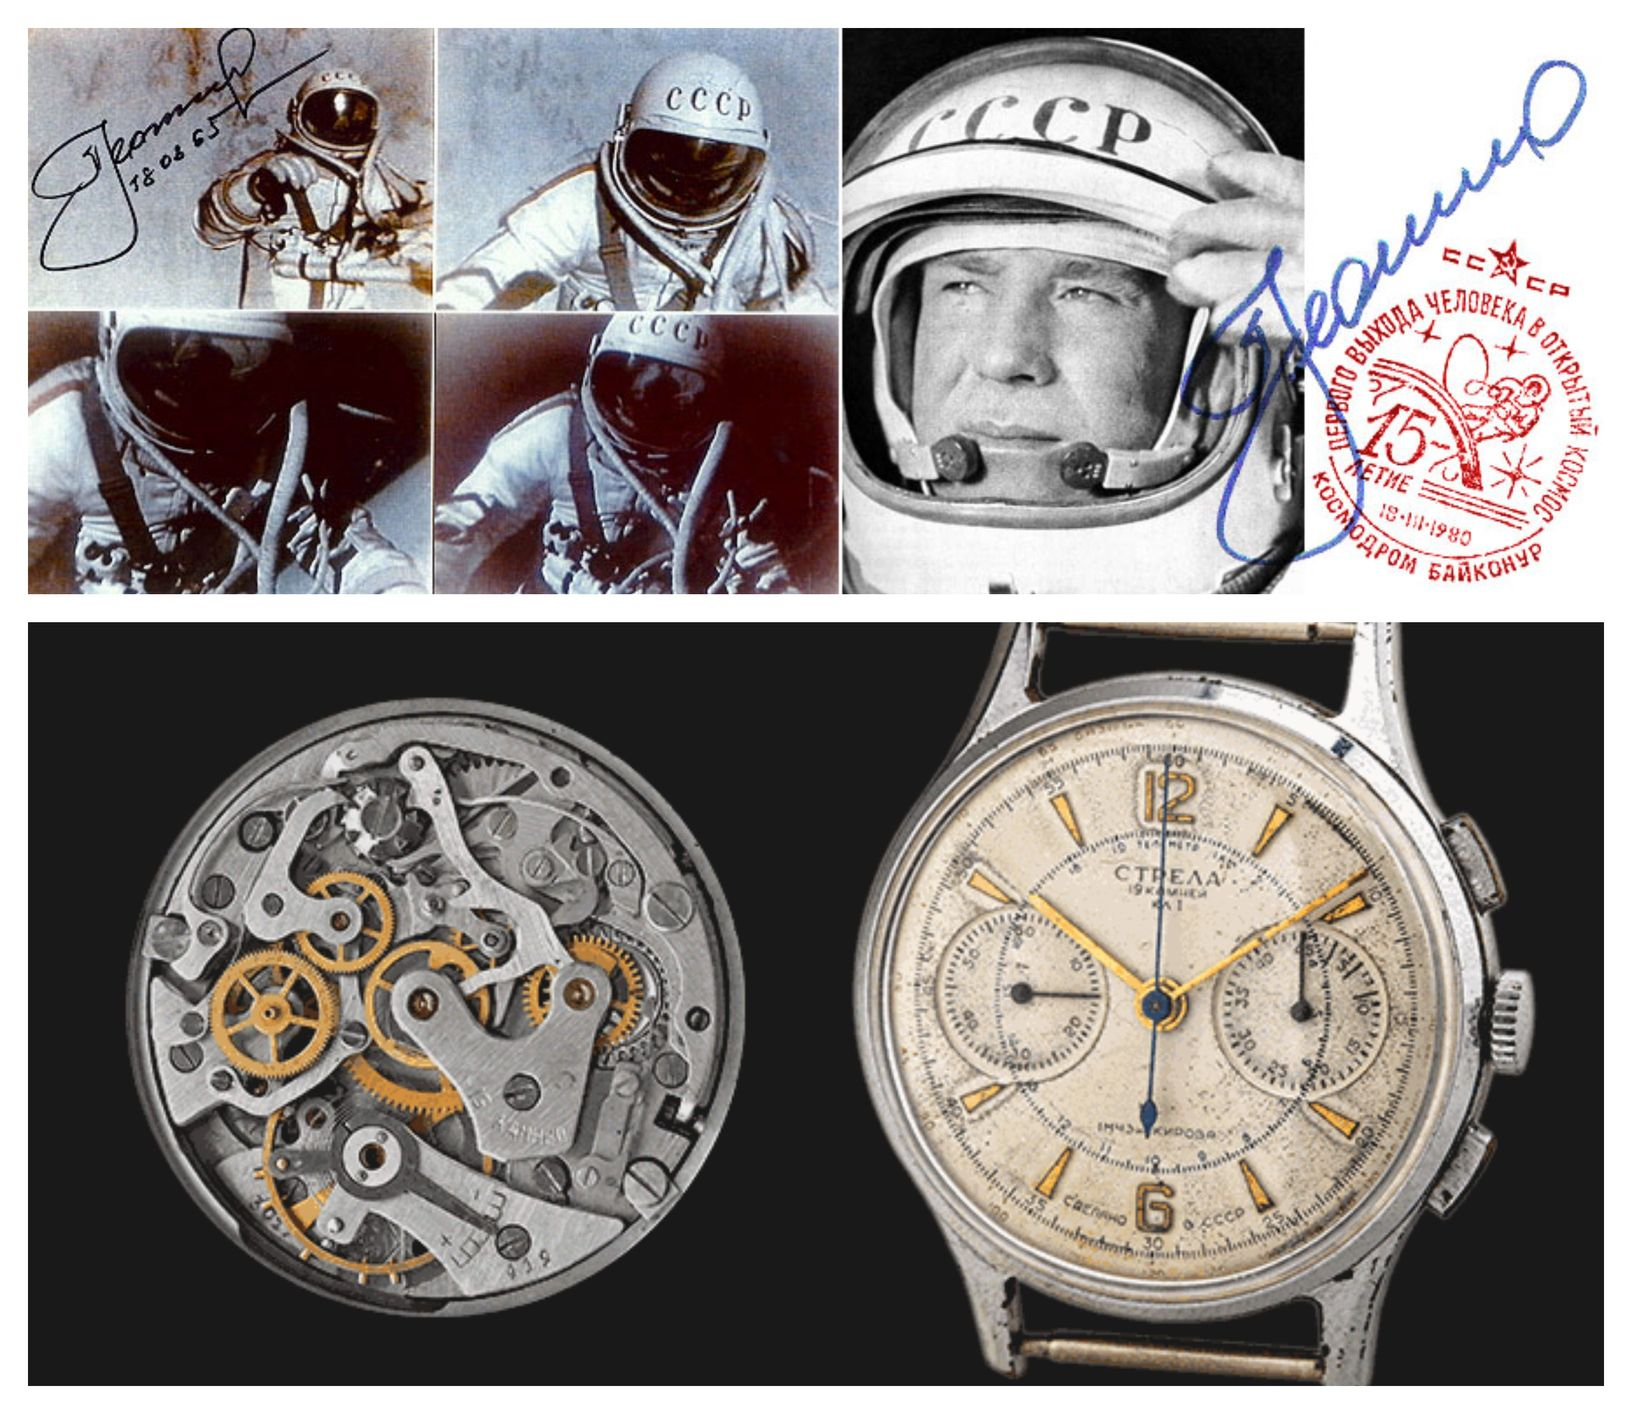 Leonov wore a Strela Chronograph watch with the Poljot 3017 hand-wound movement during his mission. Credits: STRELA